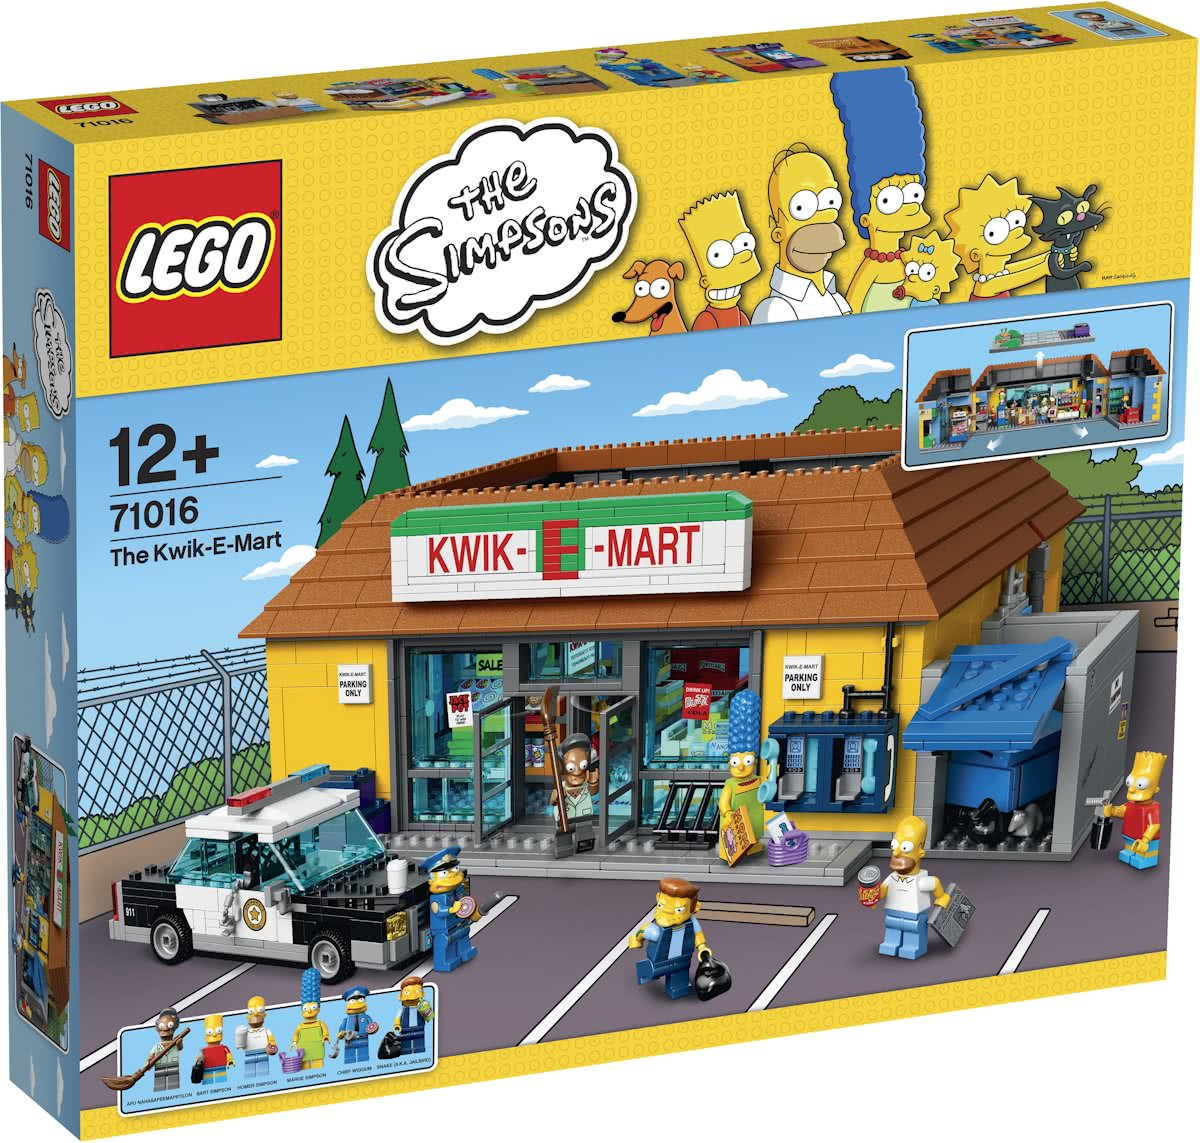 LEGO The Simpsons Kwik-E-Mart - 71016